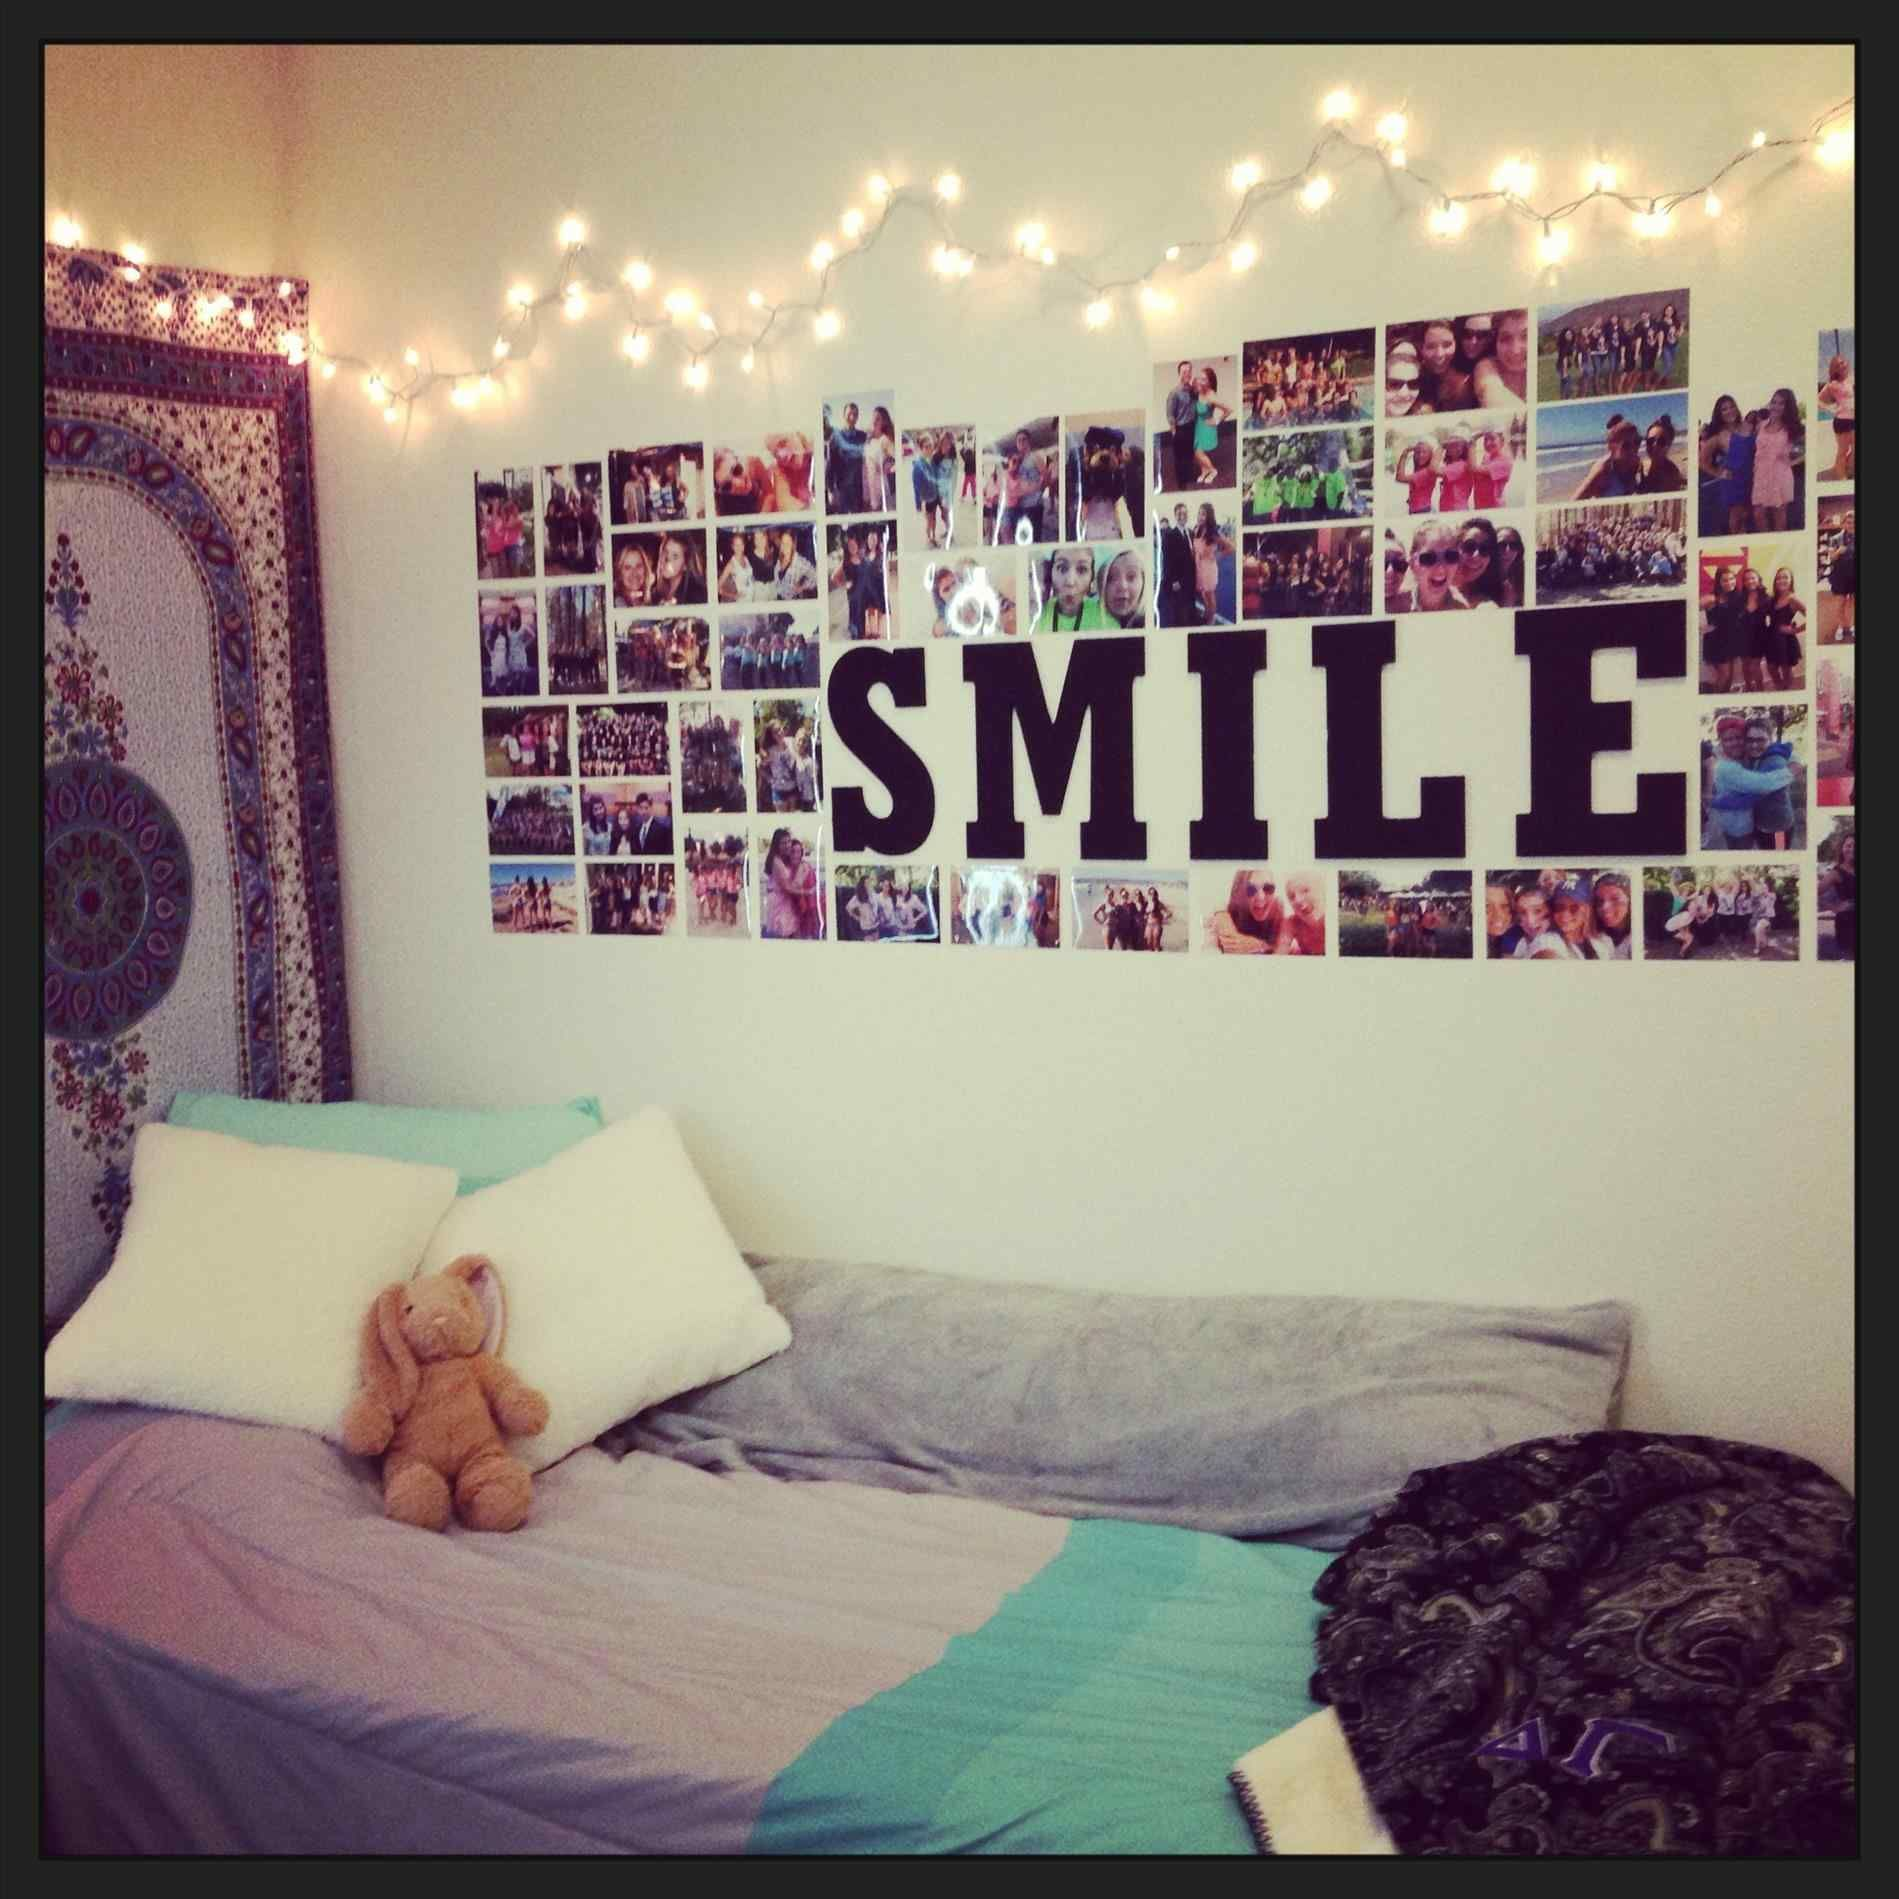 Things To Decorate Your Room With Our Diy Beautiful Decoration Ideas 25 Pictures Cheap Dorm Decor Dorm Decorations Dorm Room Decor